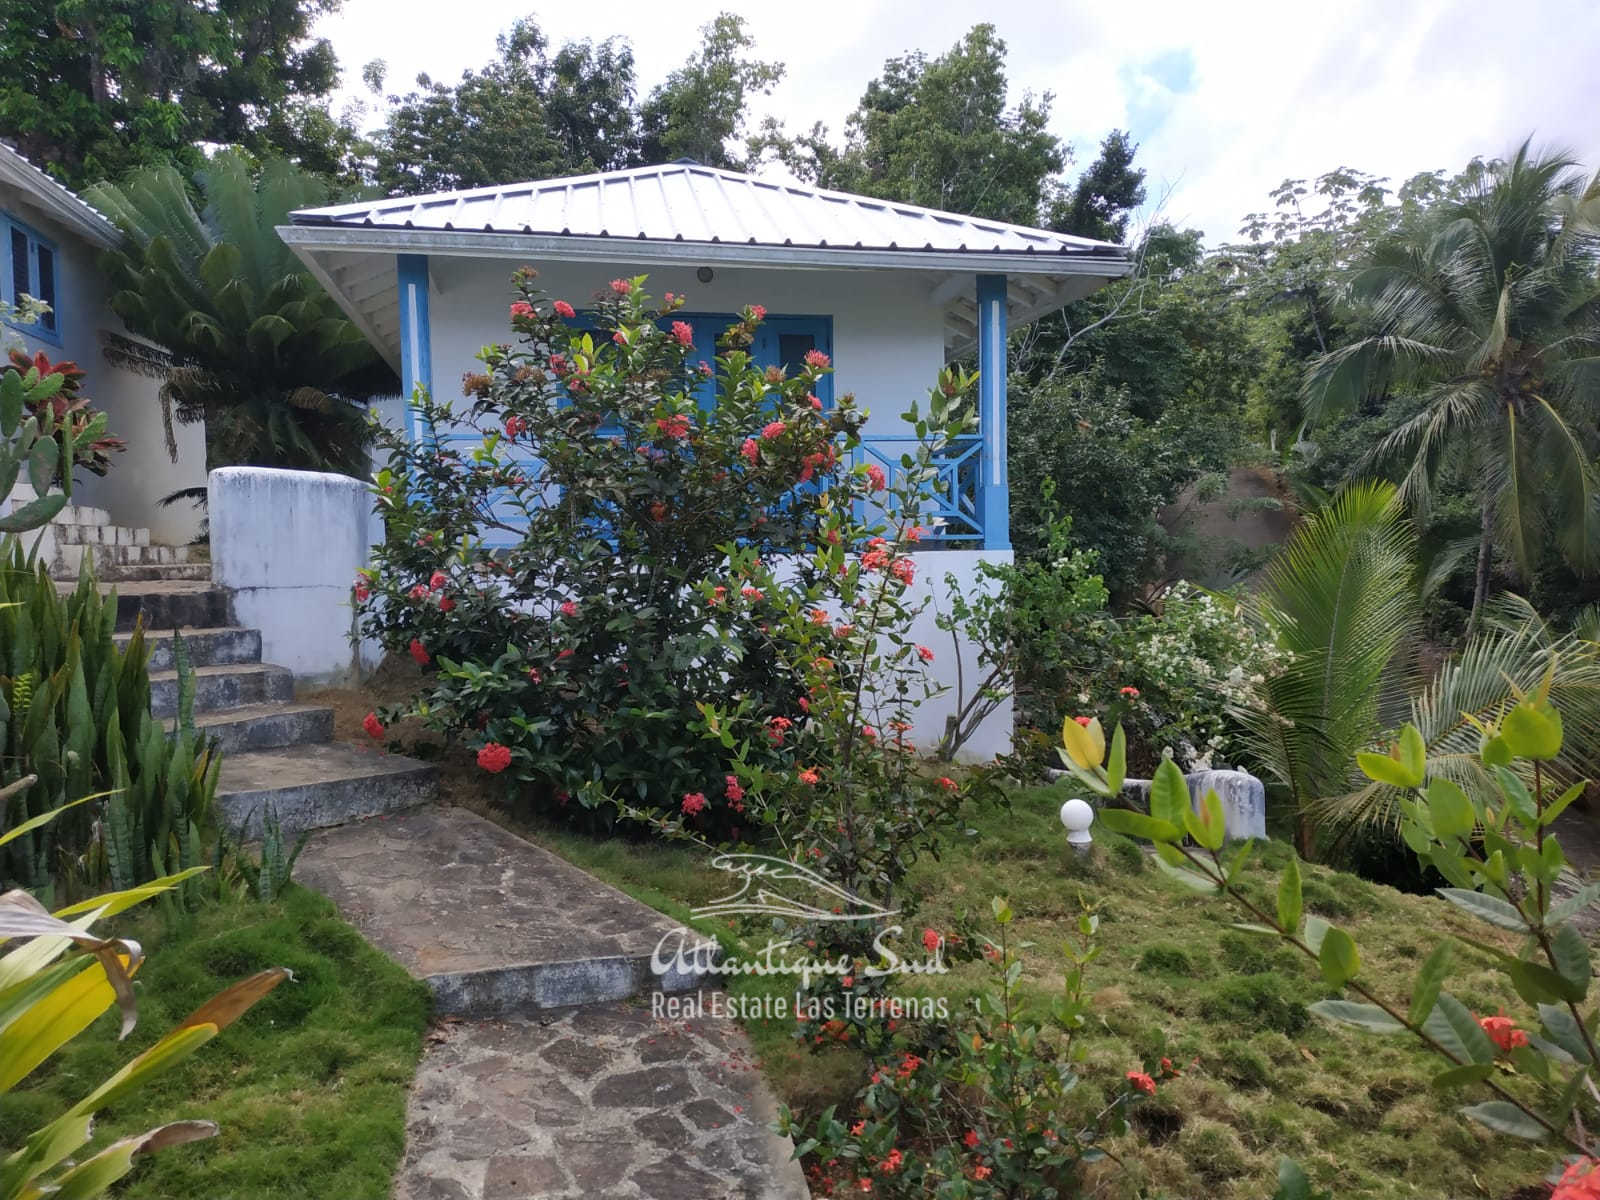 Hillside house for sale in Las terrenas2.jpg